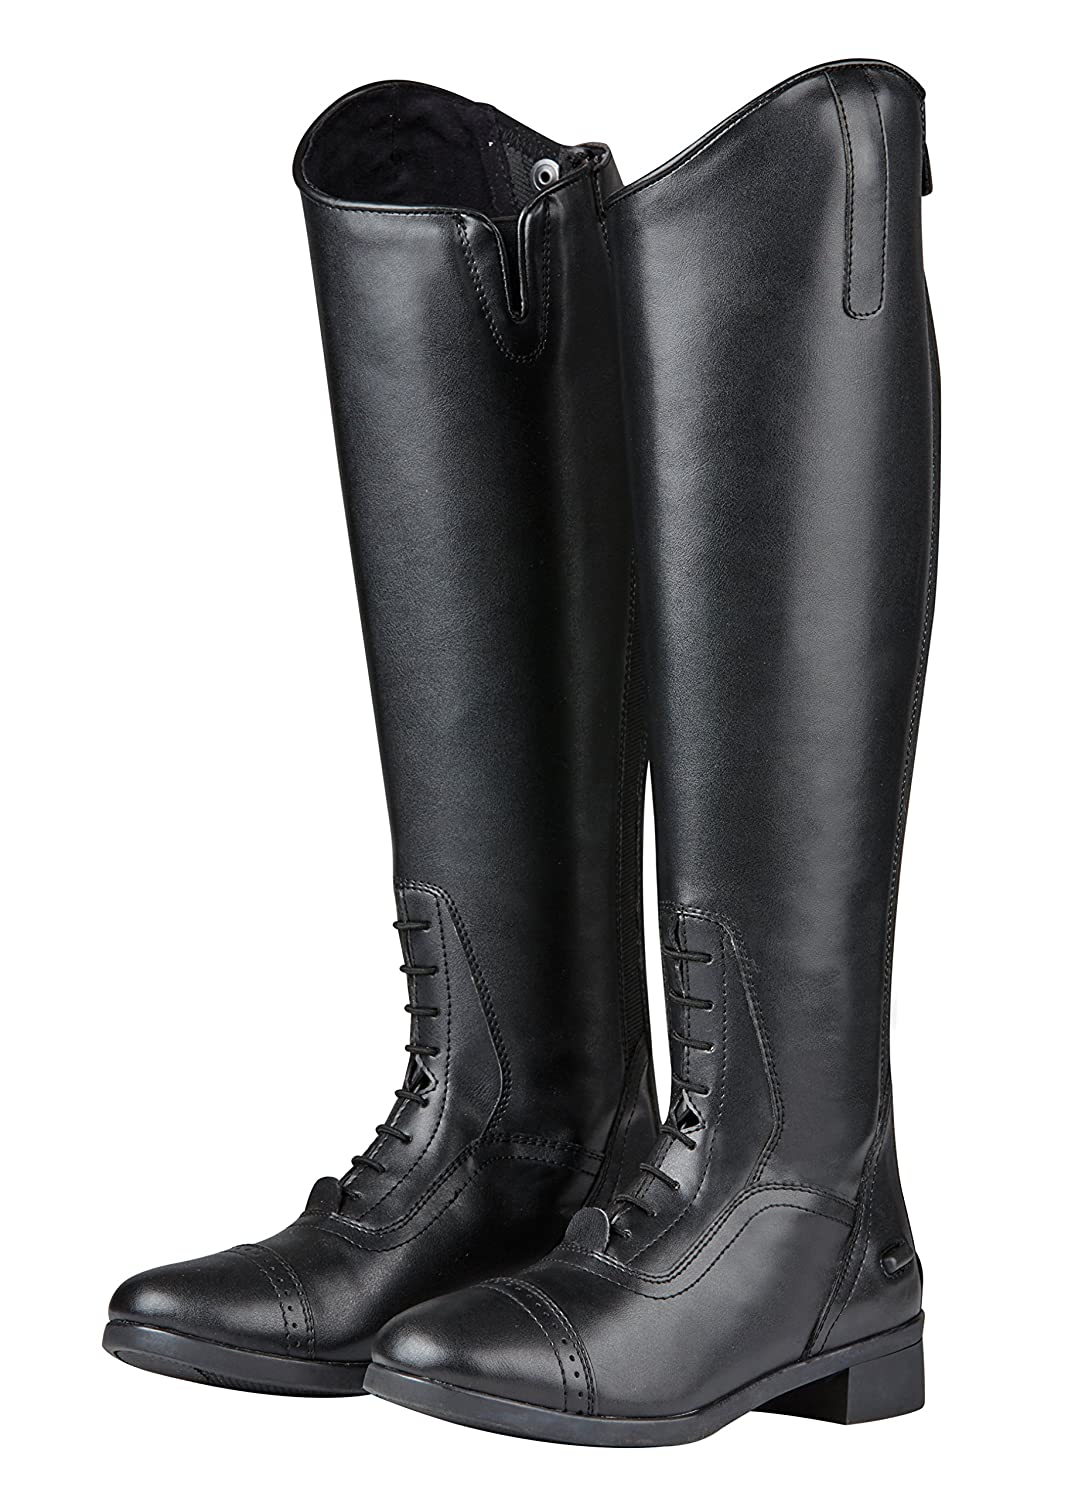 Saxon Ladies Syntovia Tall Field Boot B072N322NF 8 Regular